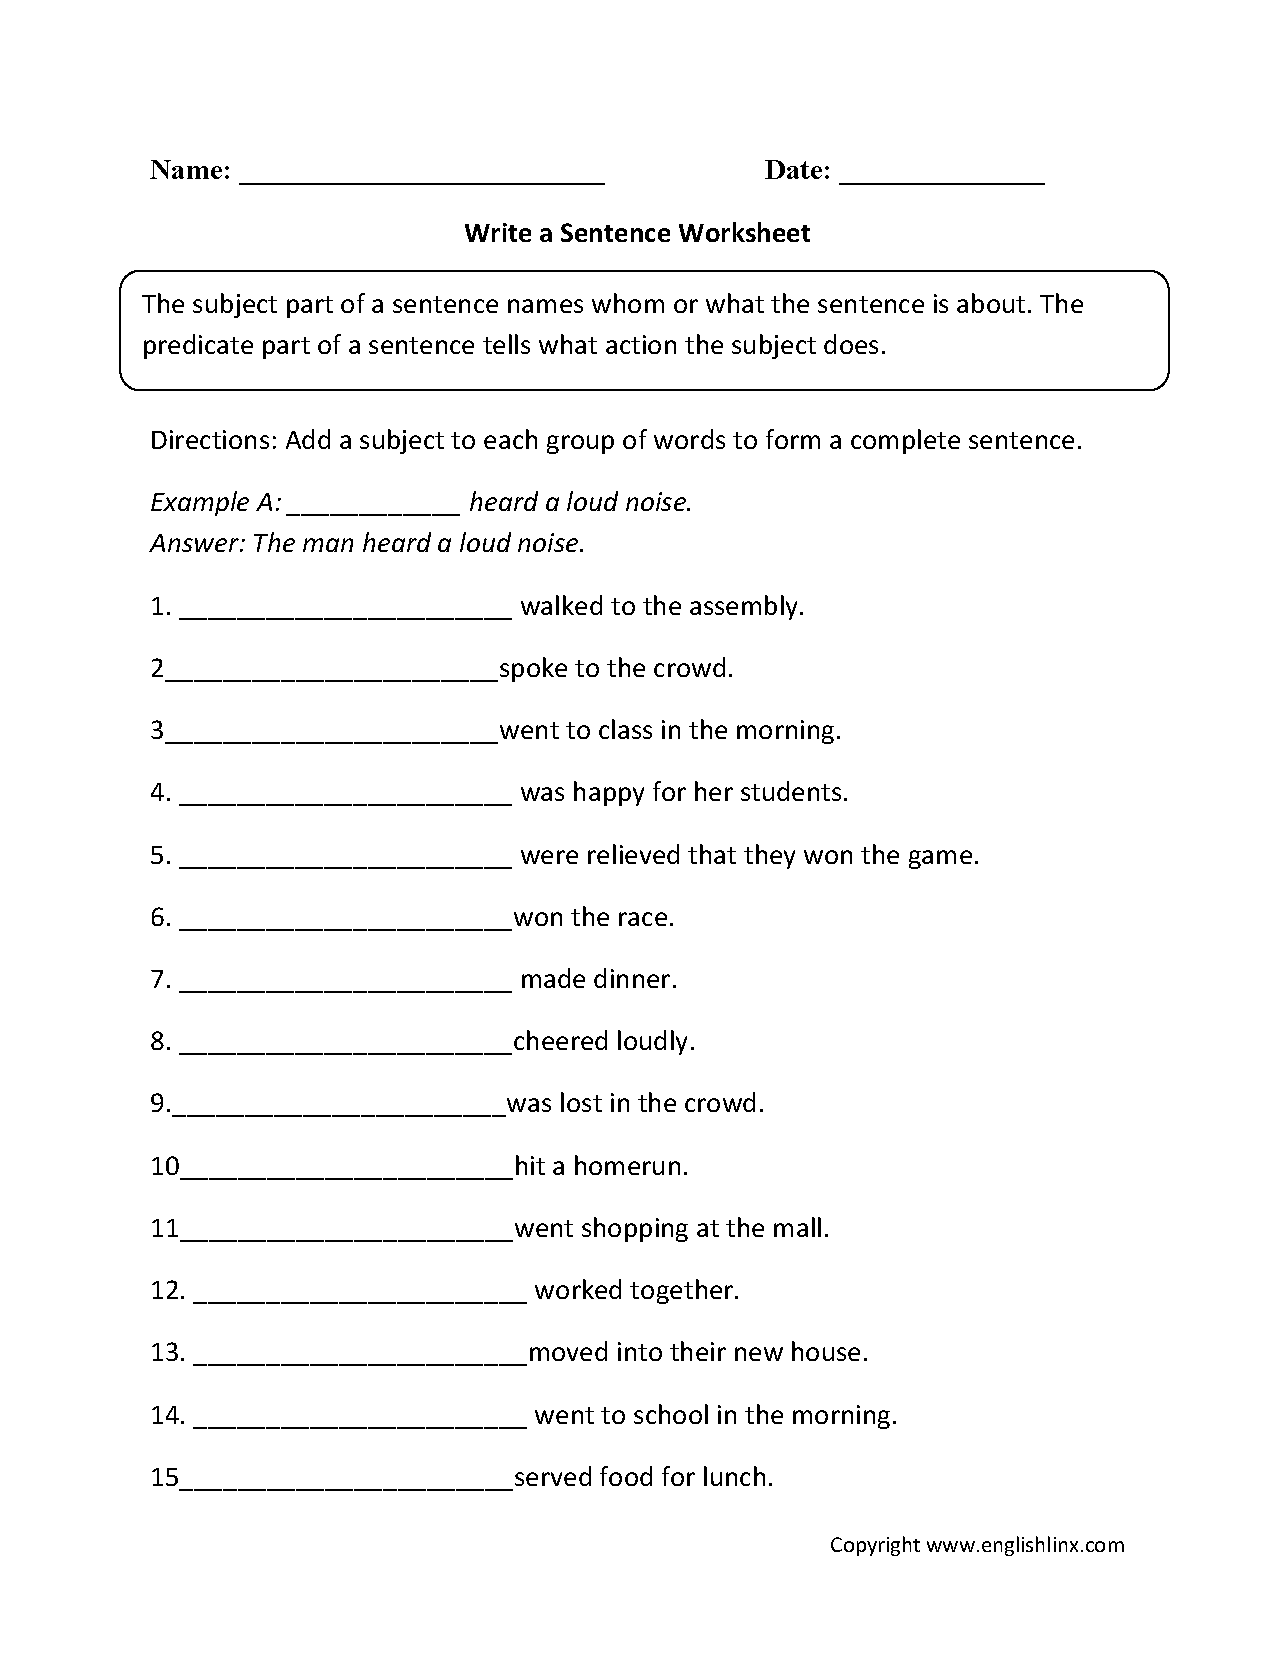 Worksheet Building Sentences Worksheets sentence structure worksheets building write a worksheet